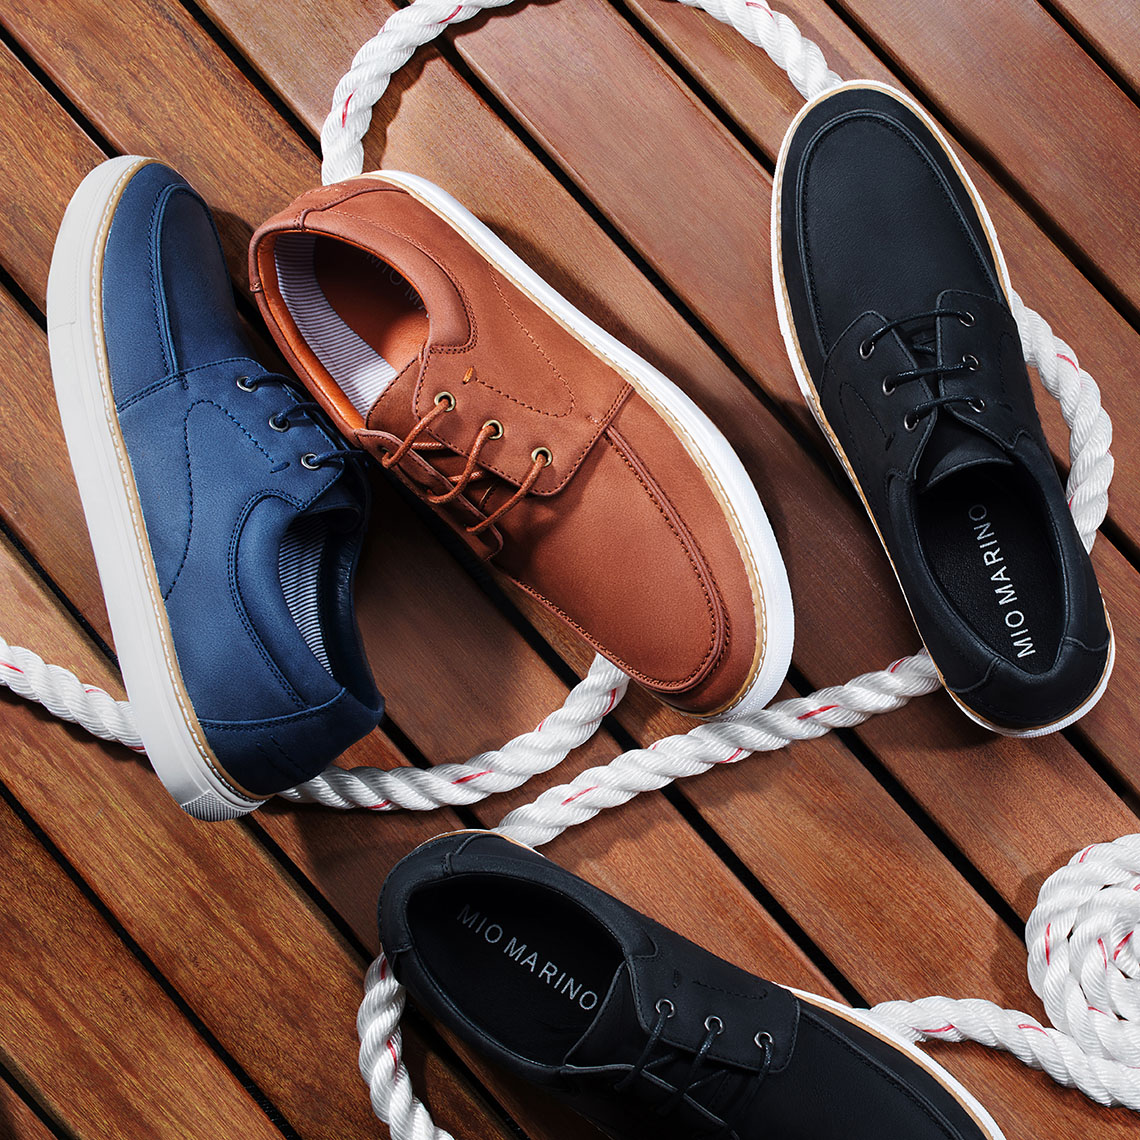 new-york-luxury-still-life-phtography-boat-shoes